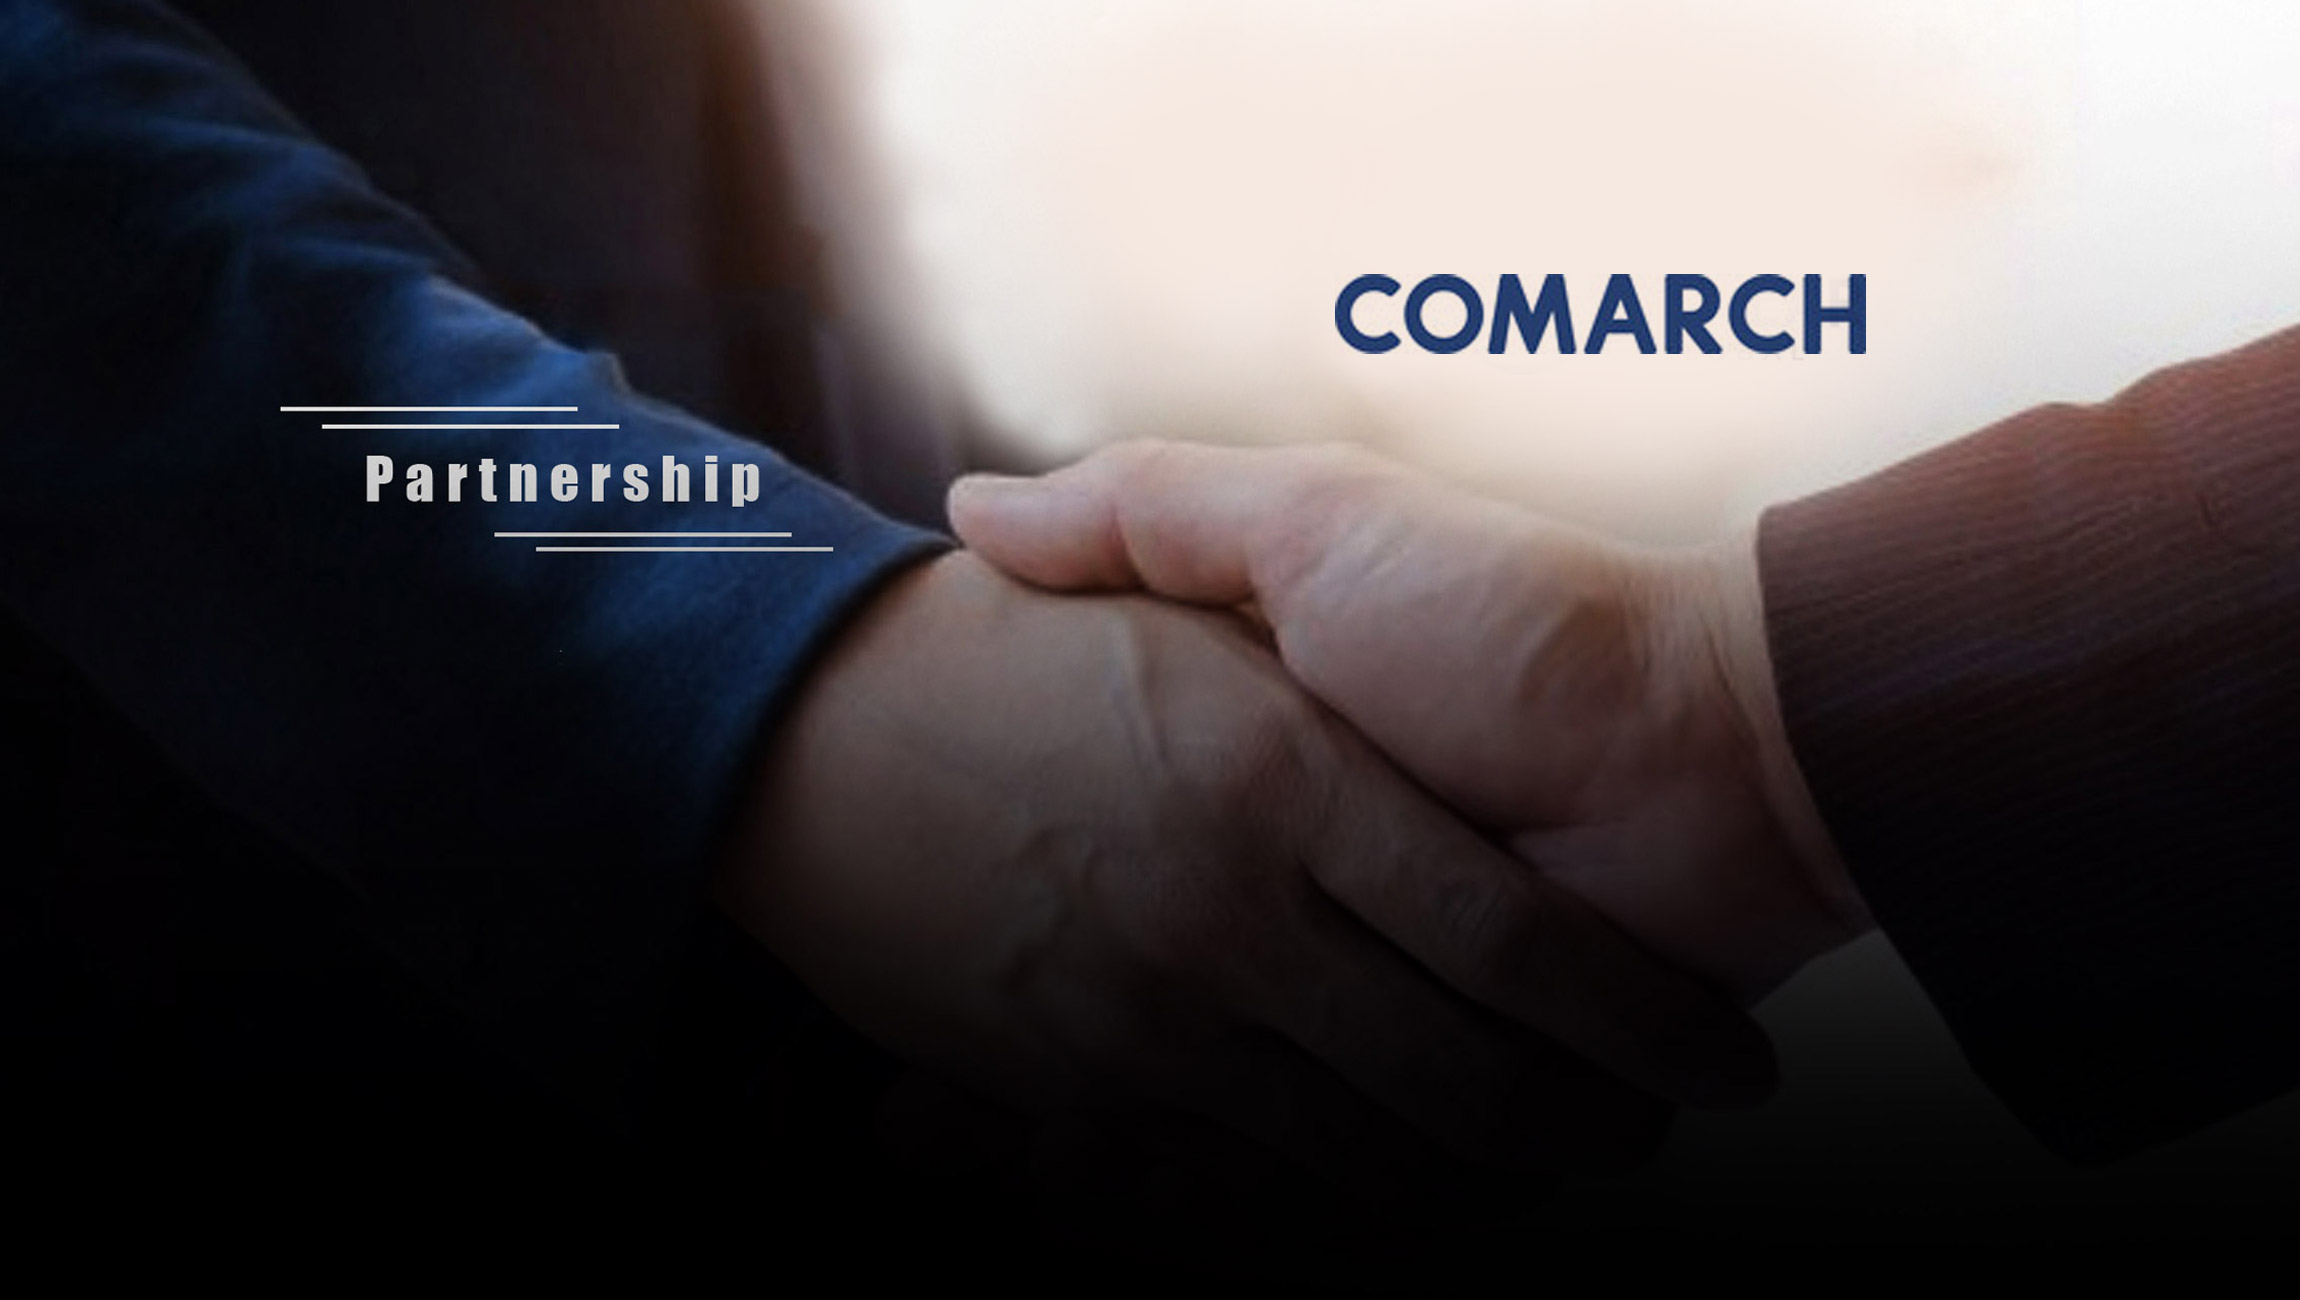 Comarch's extended Partnership with Moët Hennessy Proves High-quality Business Data Drive Efficient Sales Strategies